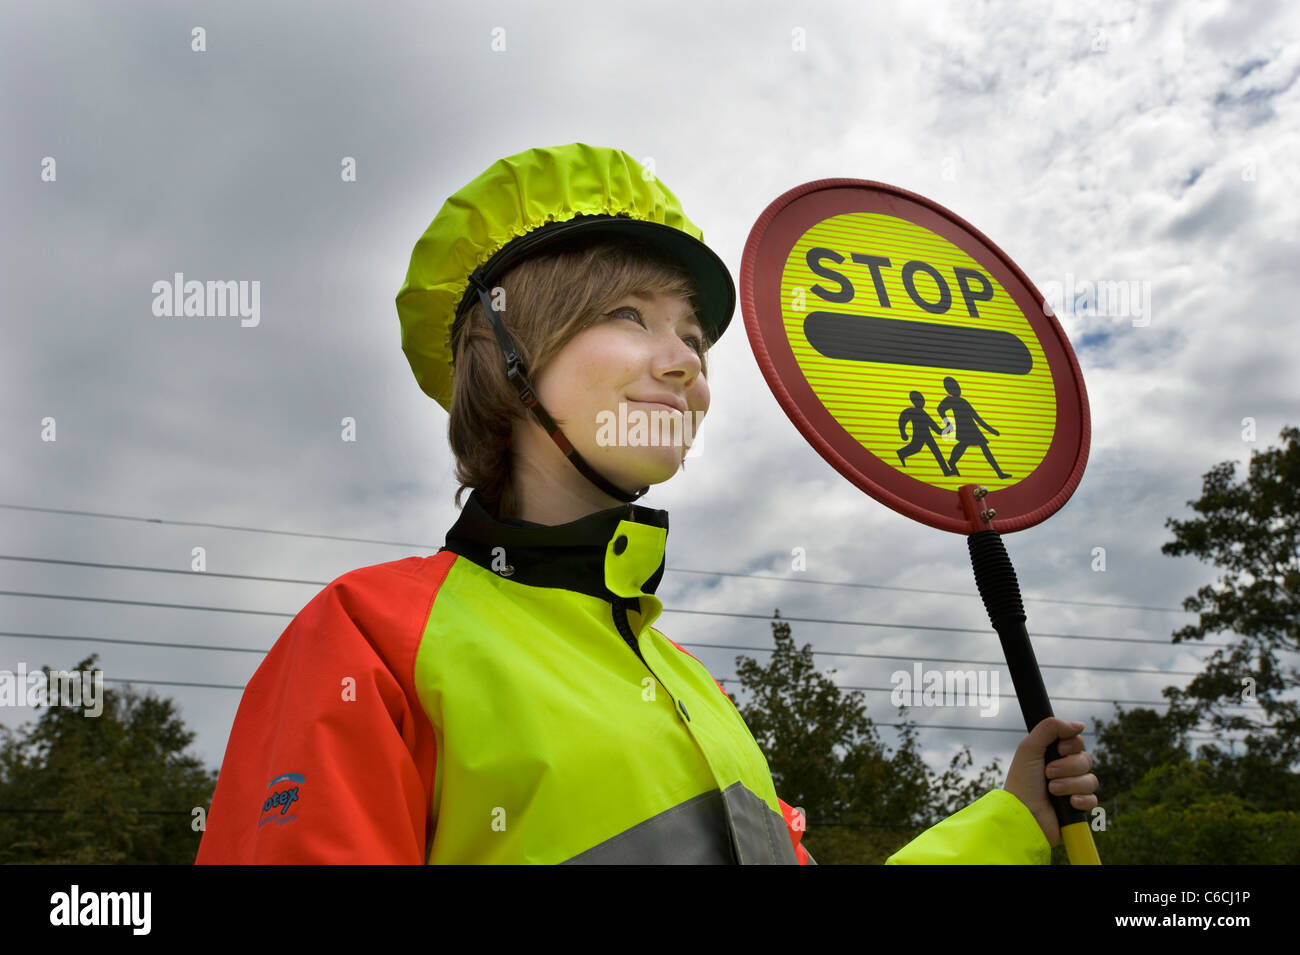 Cornwall's youngest lollipop lady in 2011, 18 year old Tomasina on school crossing patrol. Stock Photo